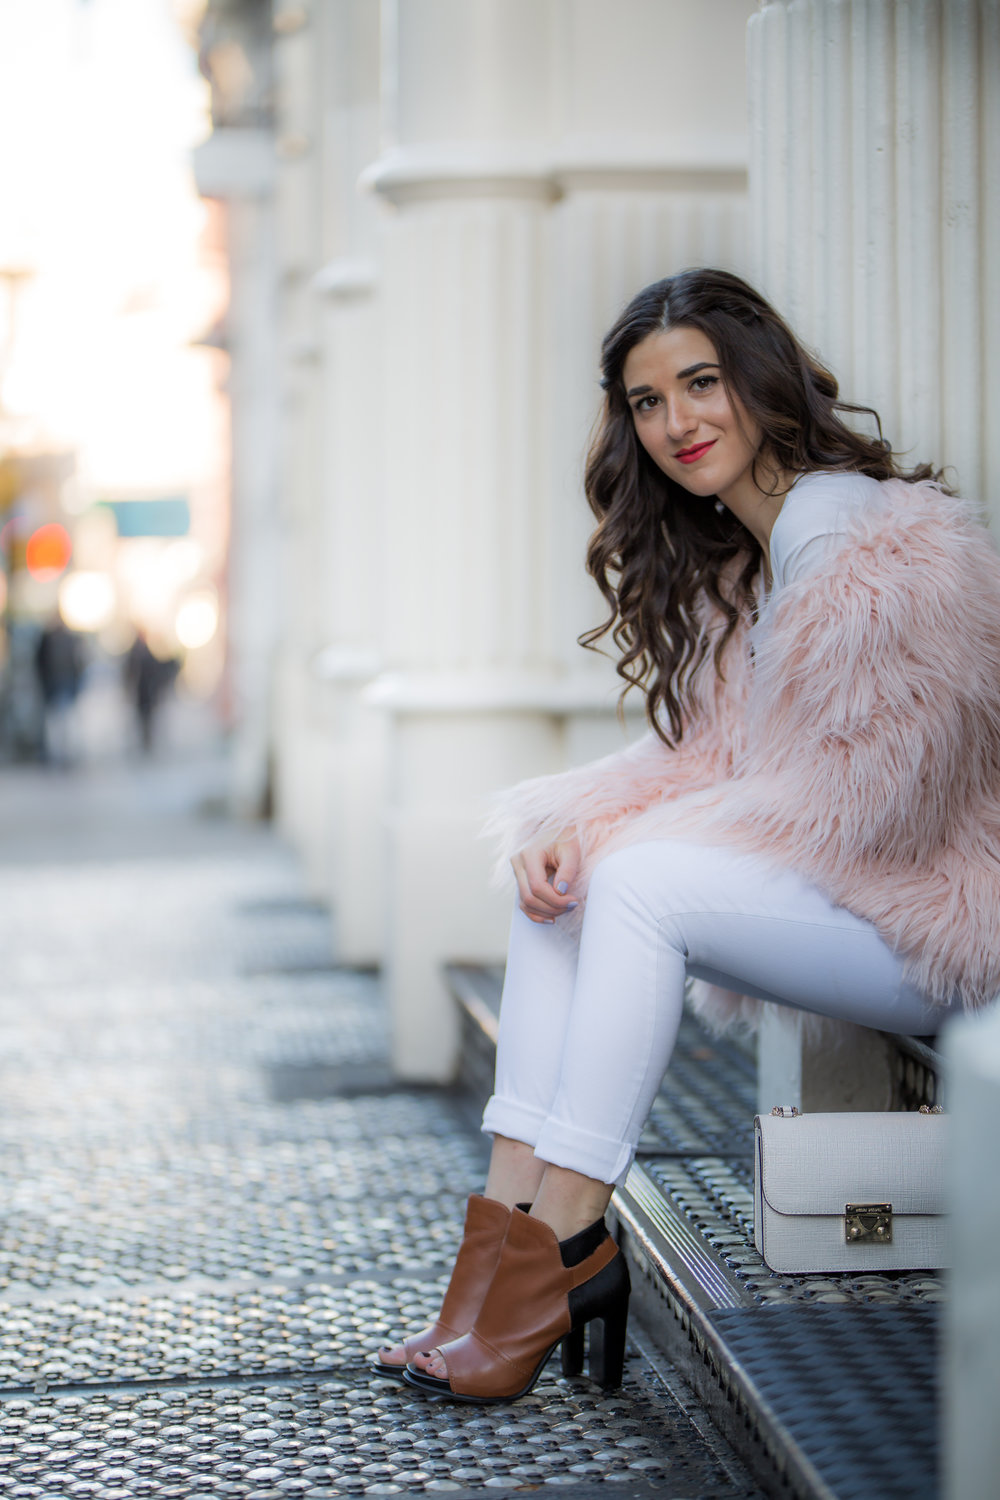 Pink Faux Fur Jacket White Jeans The Best Career Advice Esther Santer Fashion Blog NYC Street Style Blogger Outfit OOTD Trendy Winter Whites Henri Bendel Bag Tan Booties Girl Women Shop Sale Hair Shoes Wearing What To Wear Model Accessories Photoshoot.jpg